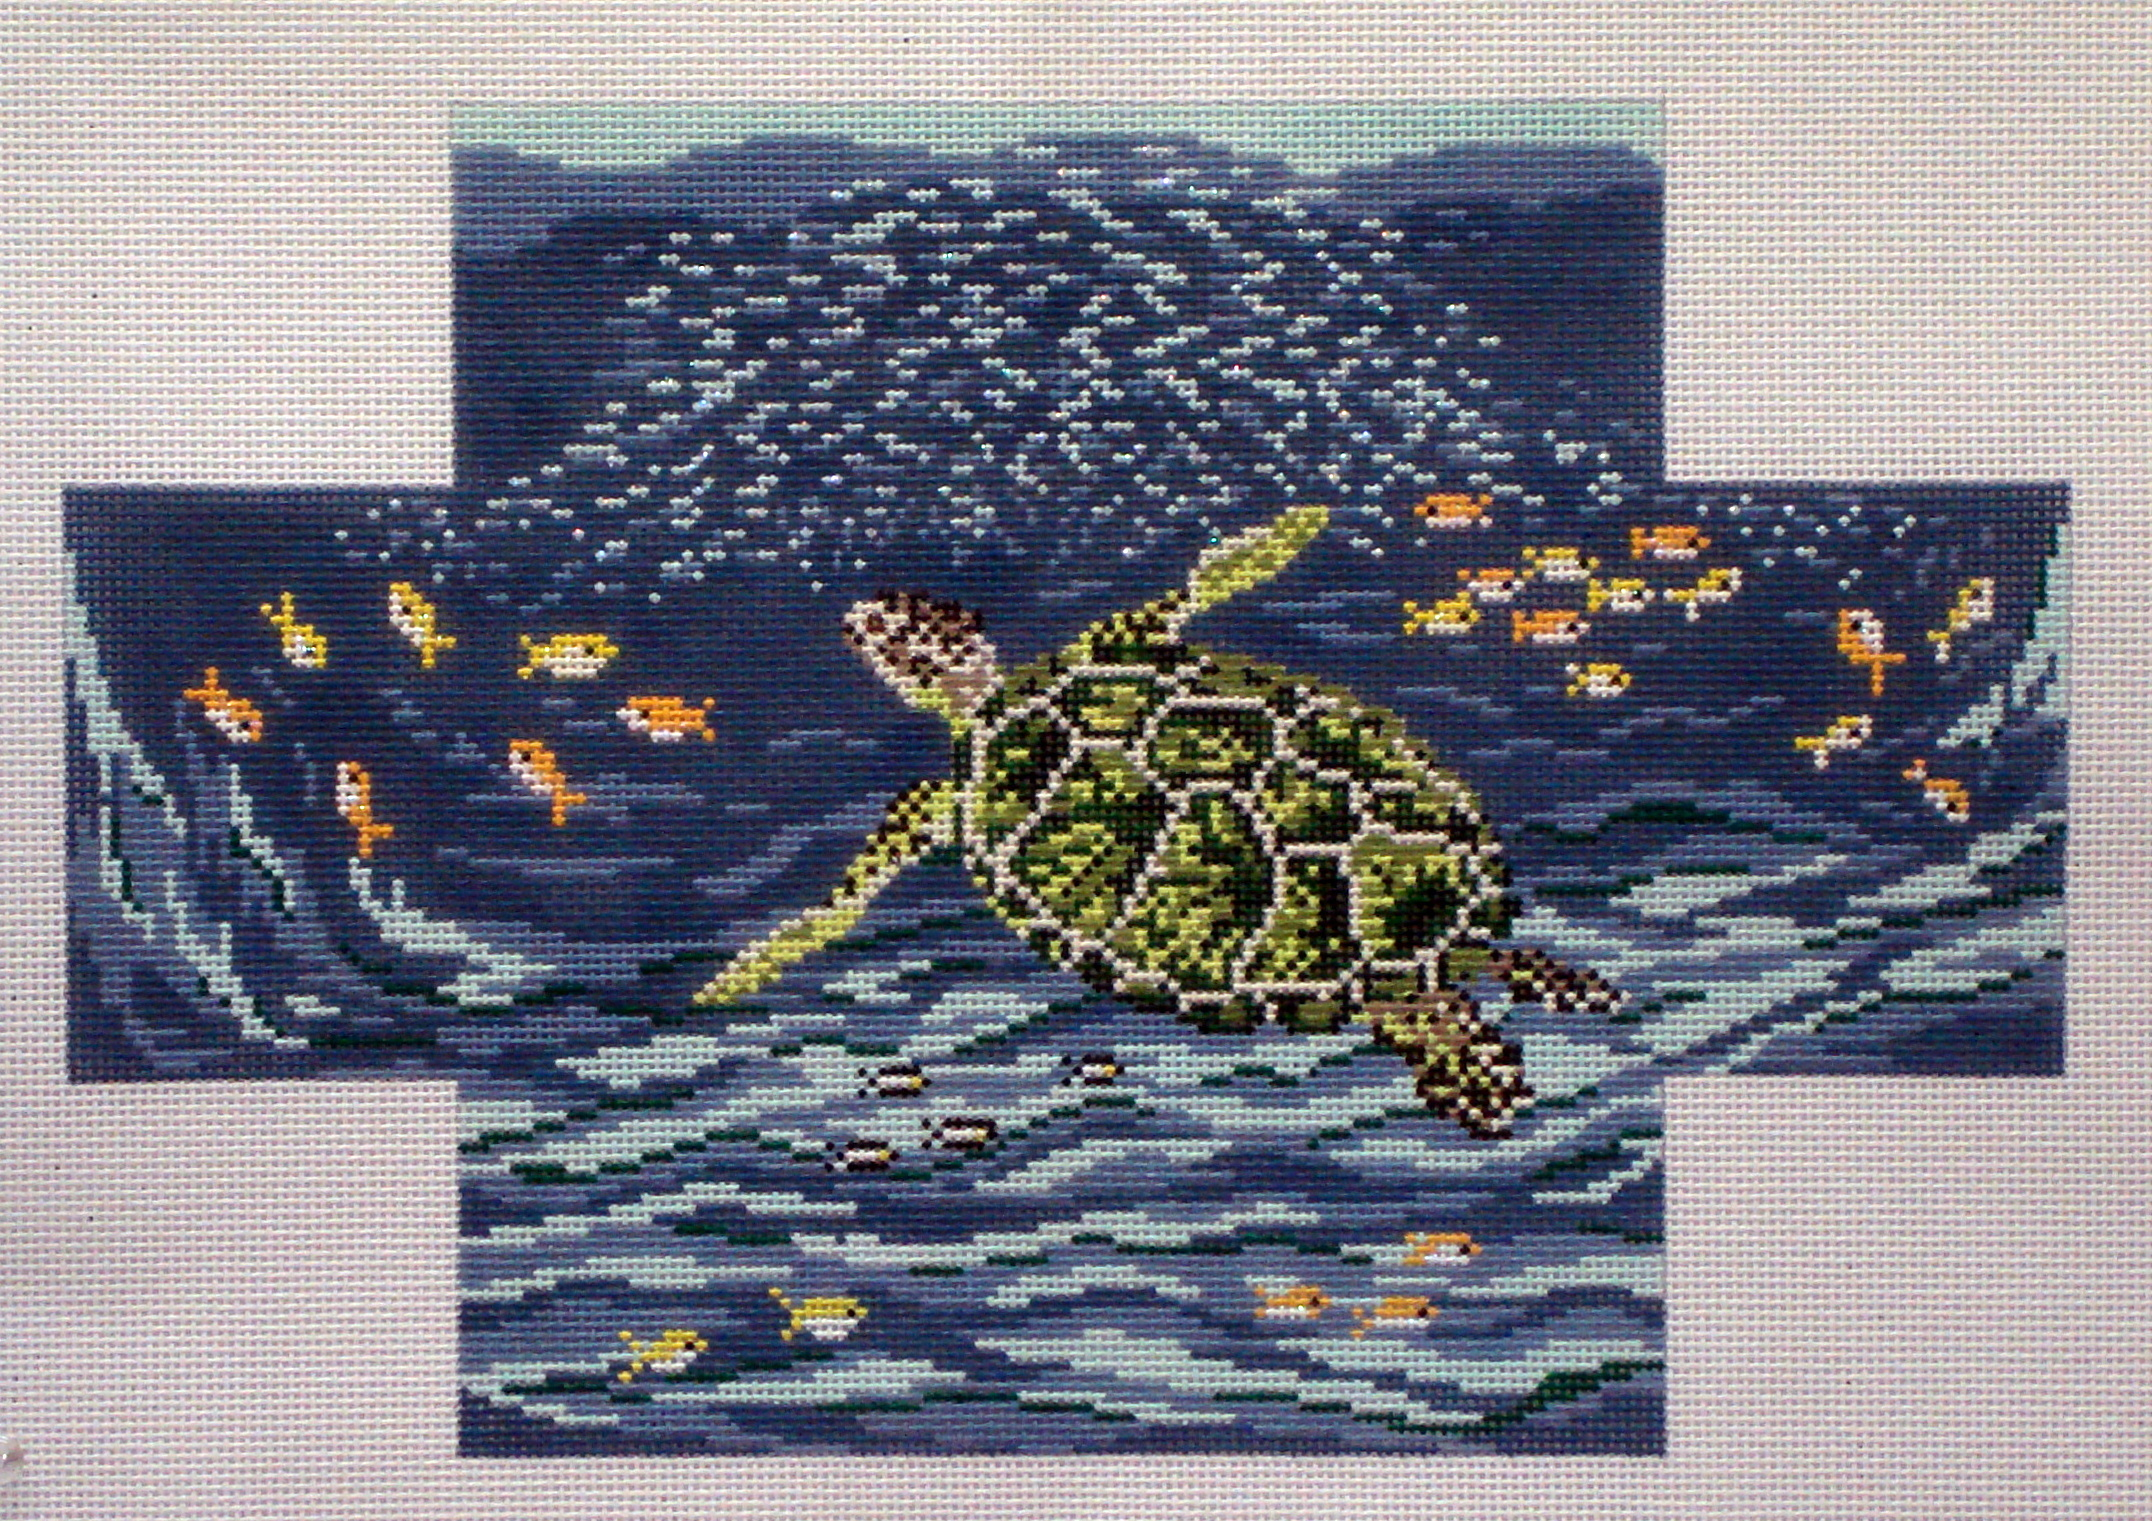 Sea Turtle Brick Cover      (handpainted by Needle Crossing) 18*2706